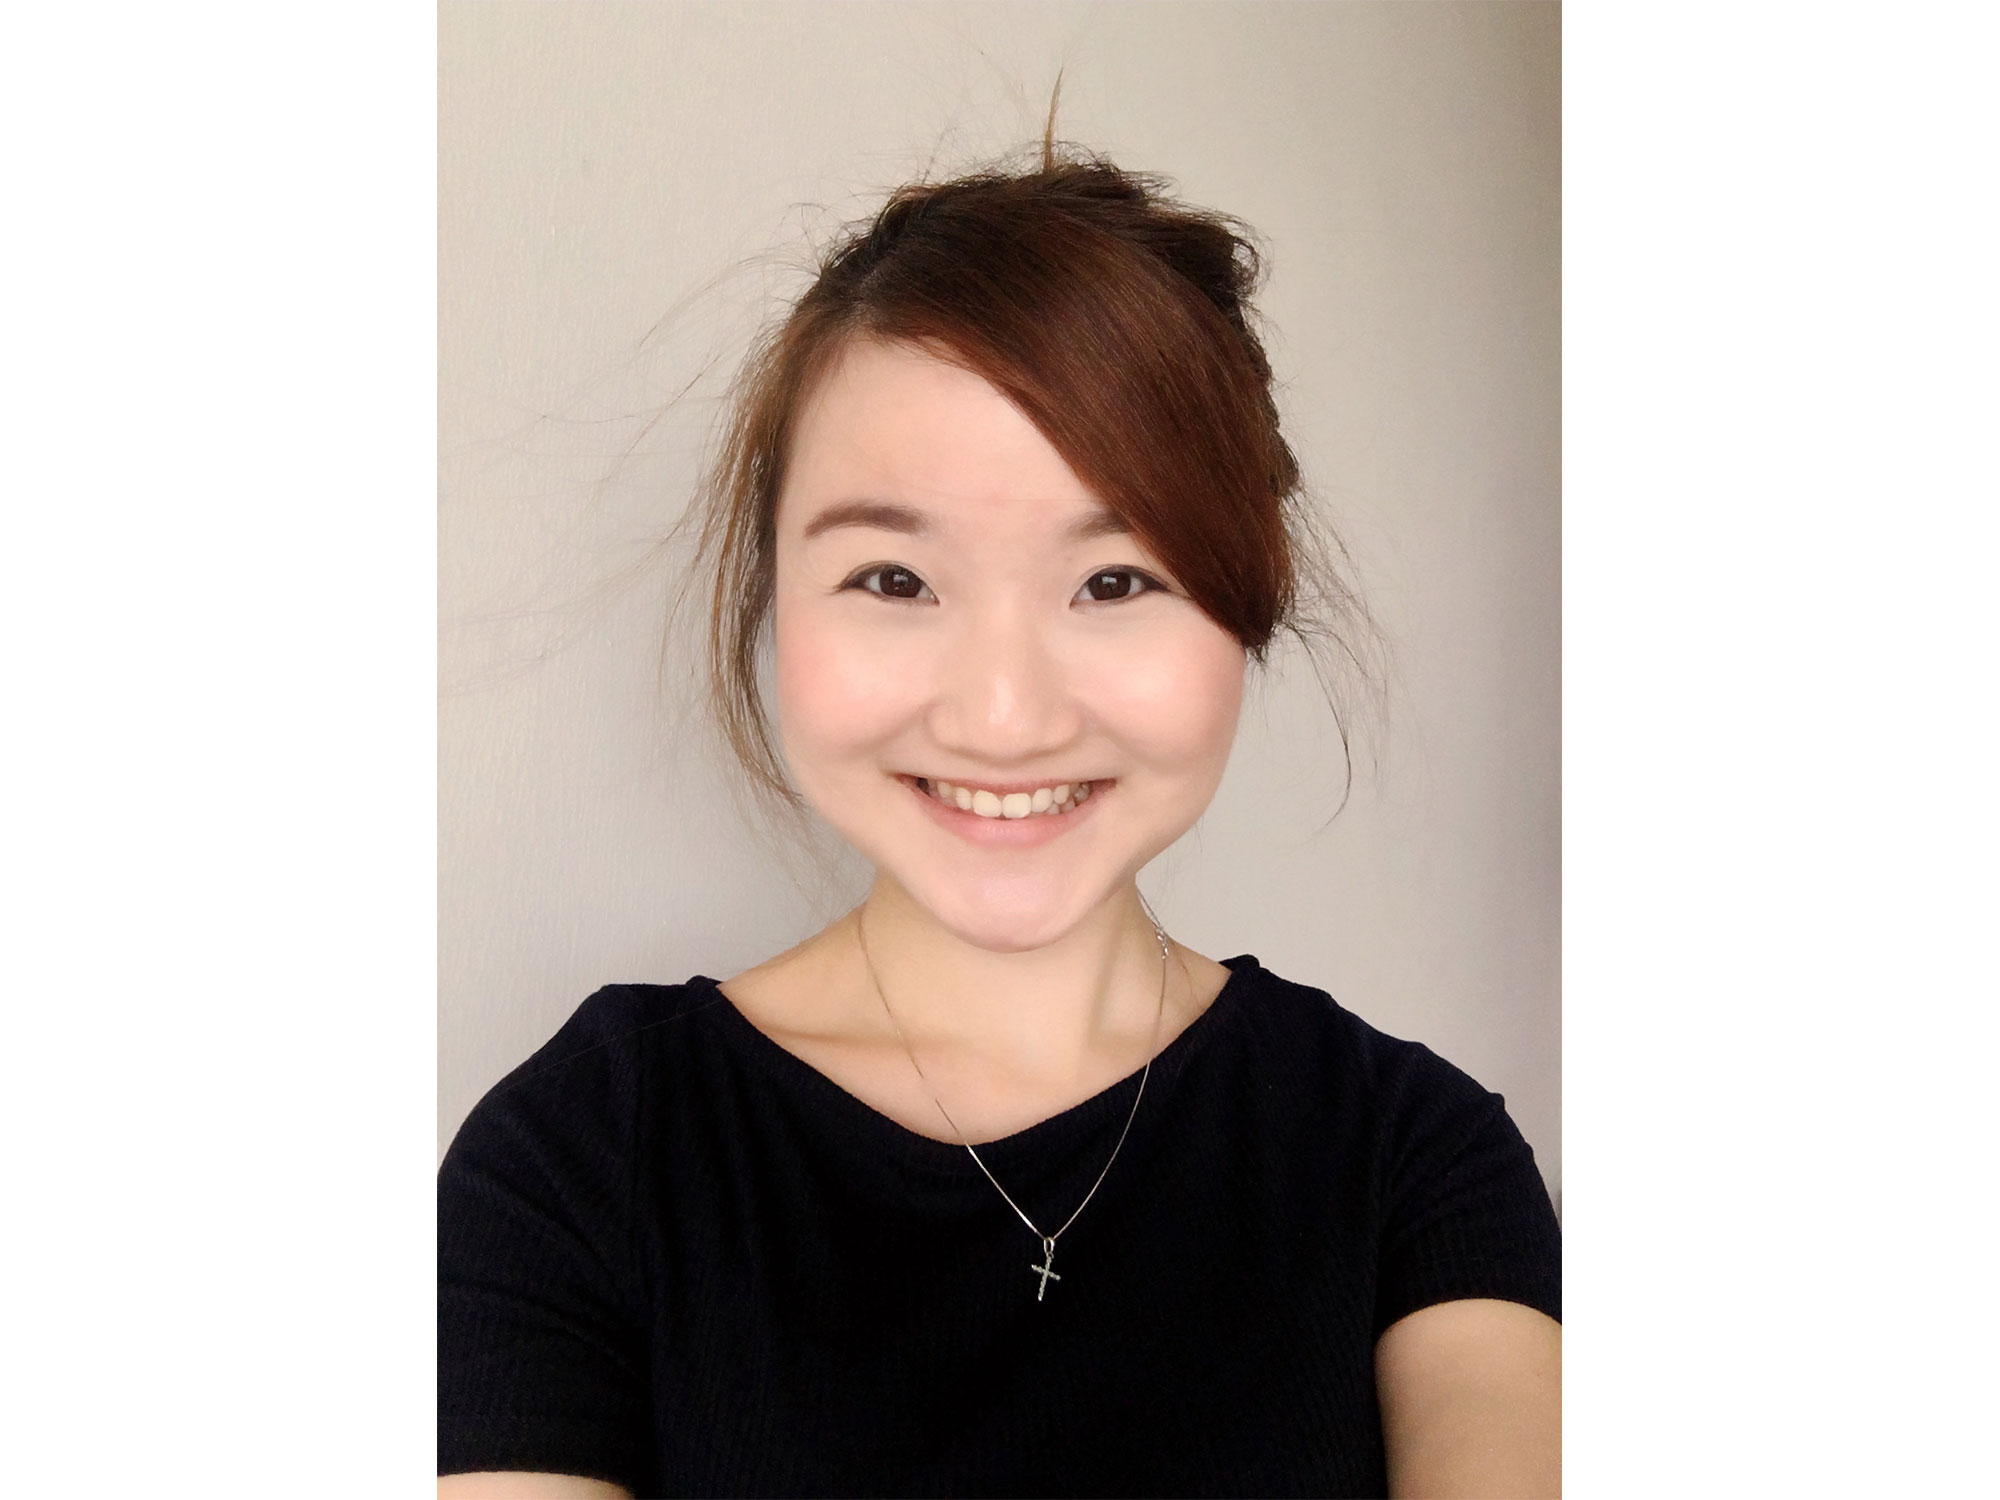 rachael - is a 24-year-old Singaporean who has been working in the social services sector since 2015. She felt convicted to enter this field because of a newswriting module in university that opened her heart towards the elderly in Singapore who are living with low or no family support. She aims to specialise in dementia care in the near future.